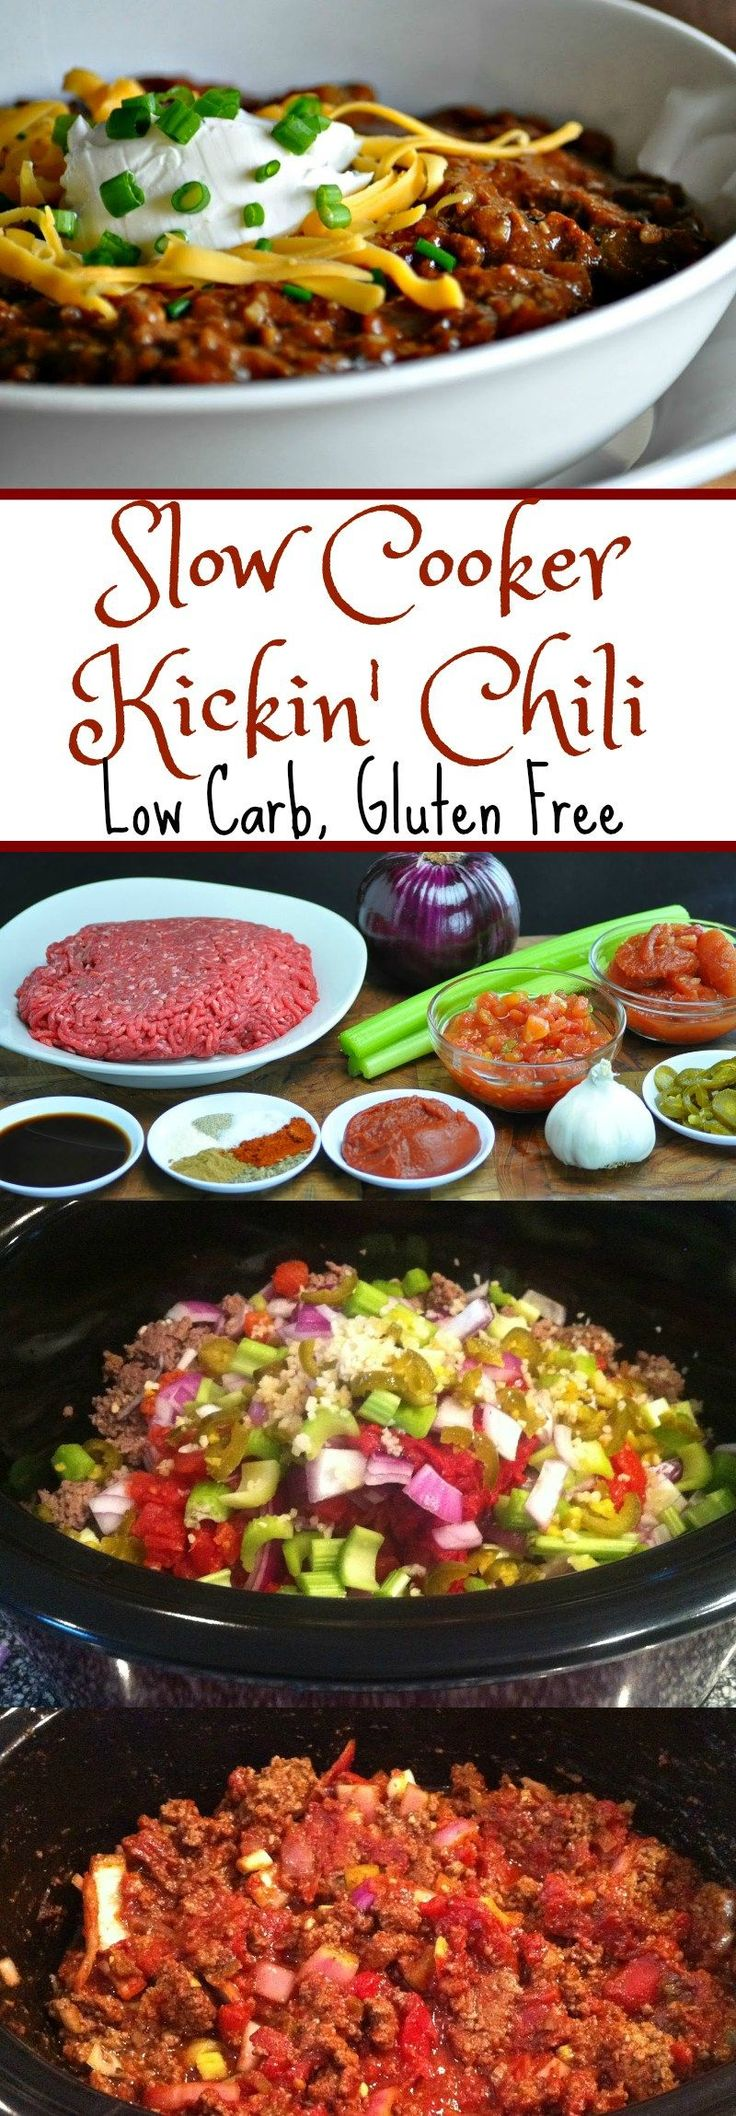 Slow Cooker Kickin Chili - Low Carb, Gluten Free   Peace Love and Low Carb